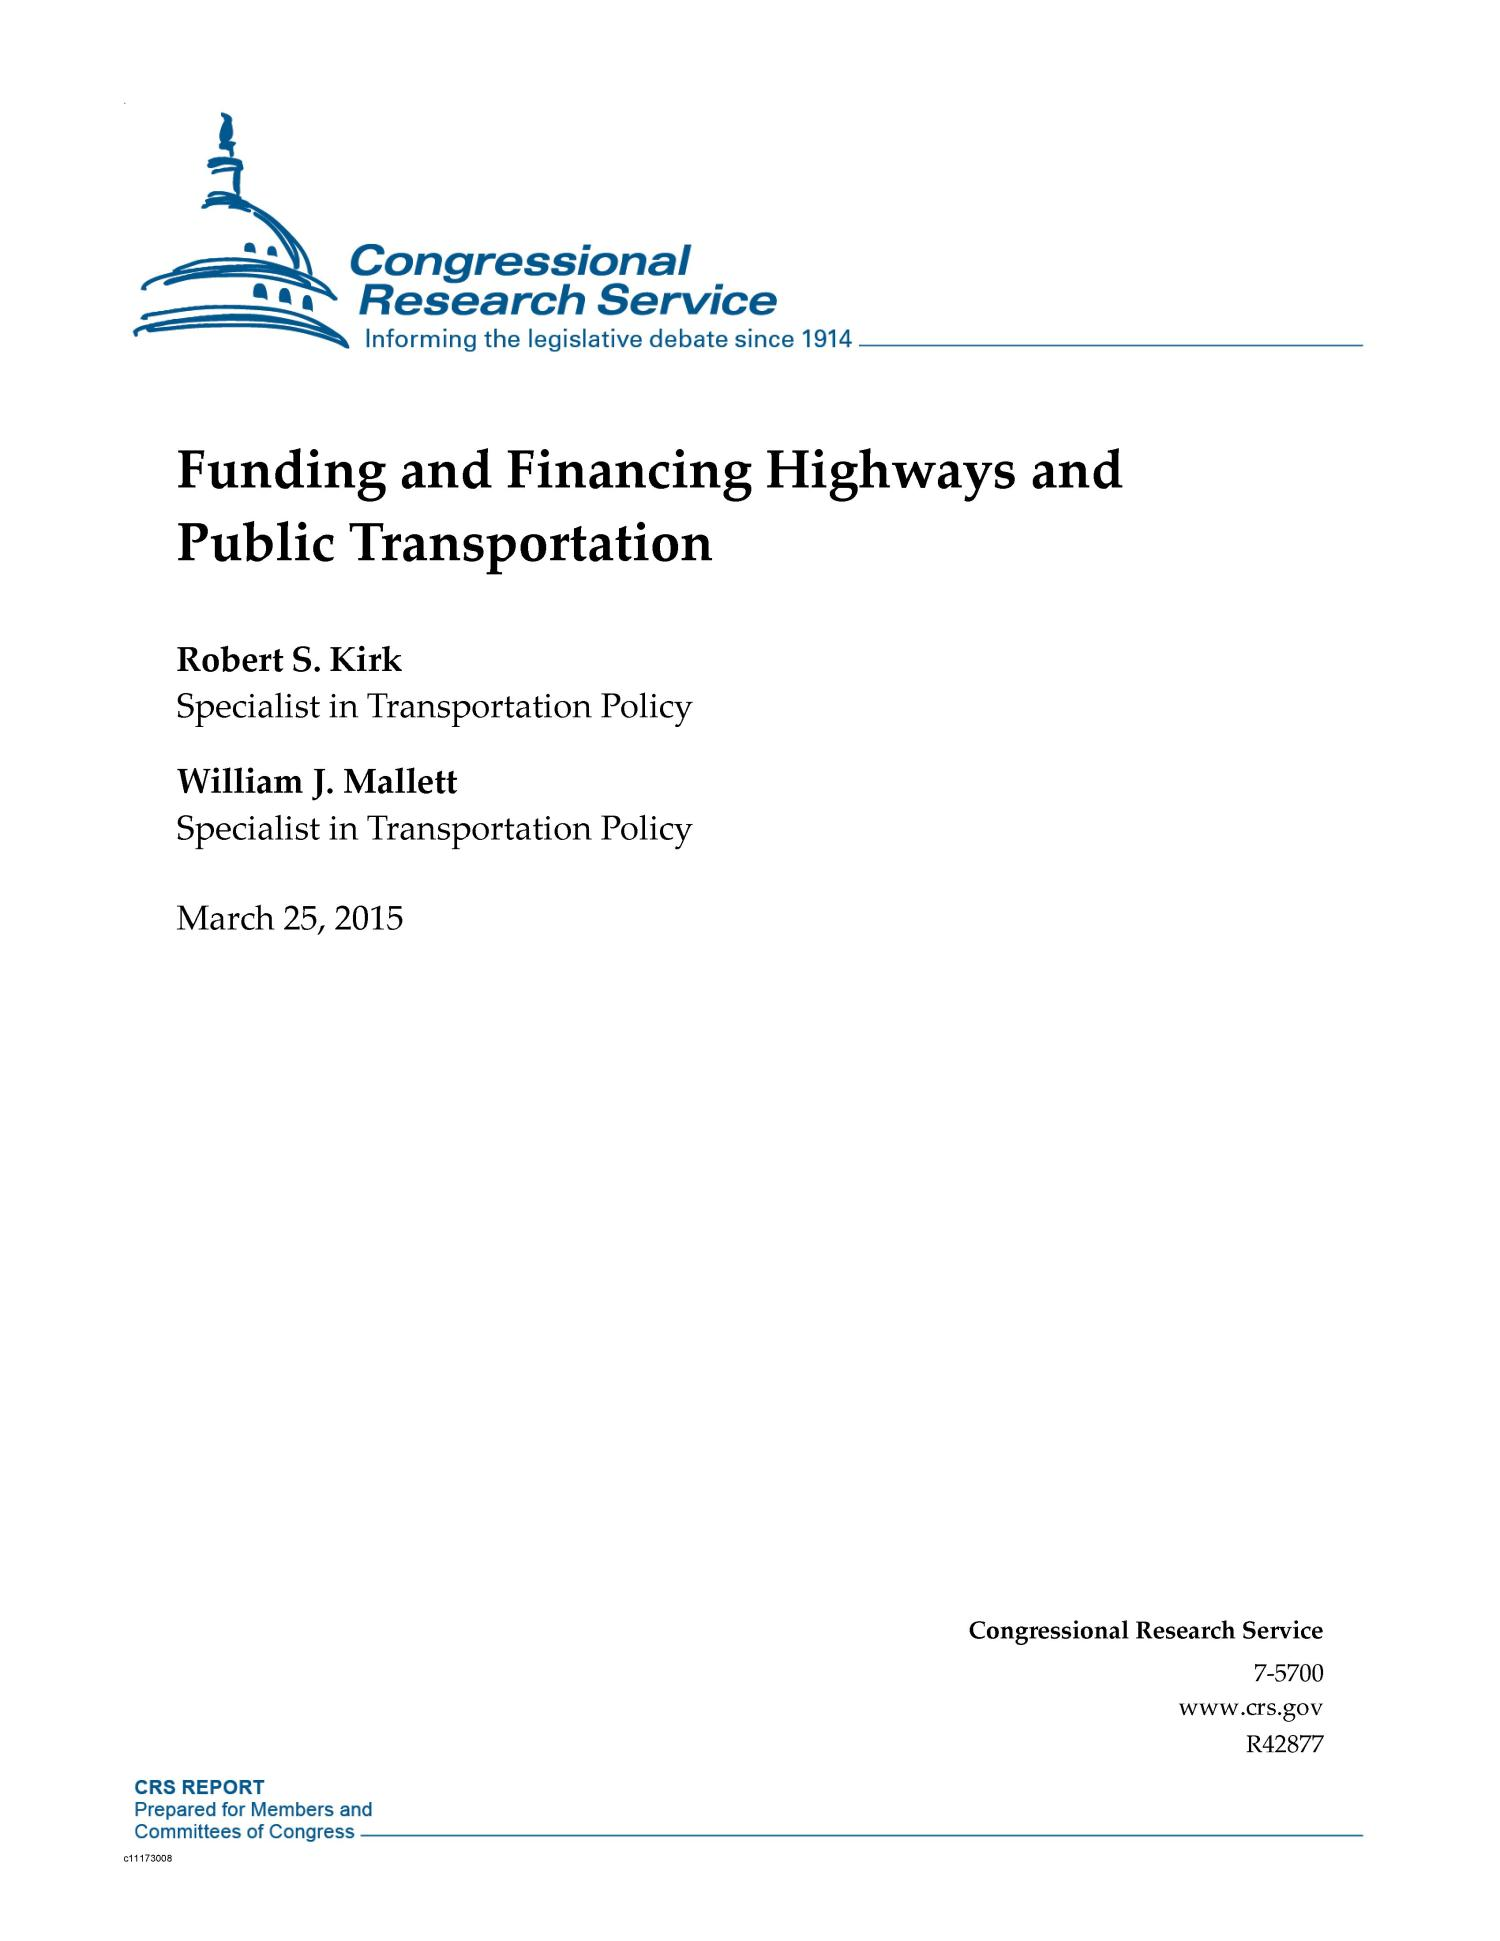 Funding and Financing Highways and Public Transportation                                                                                                      [Sequence #]: 1 of 34